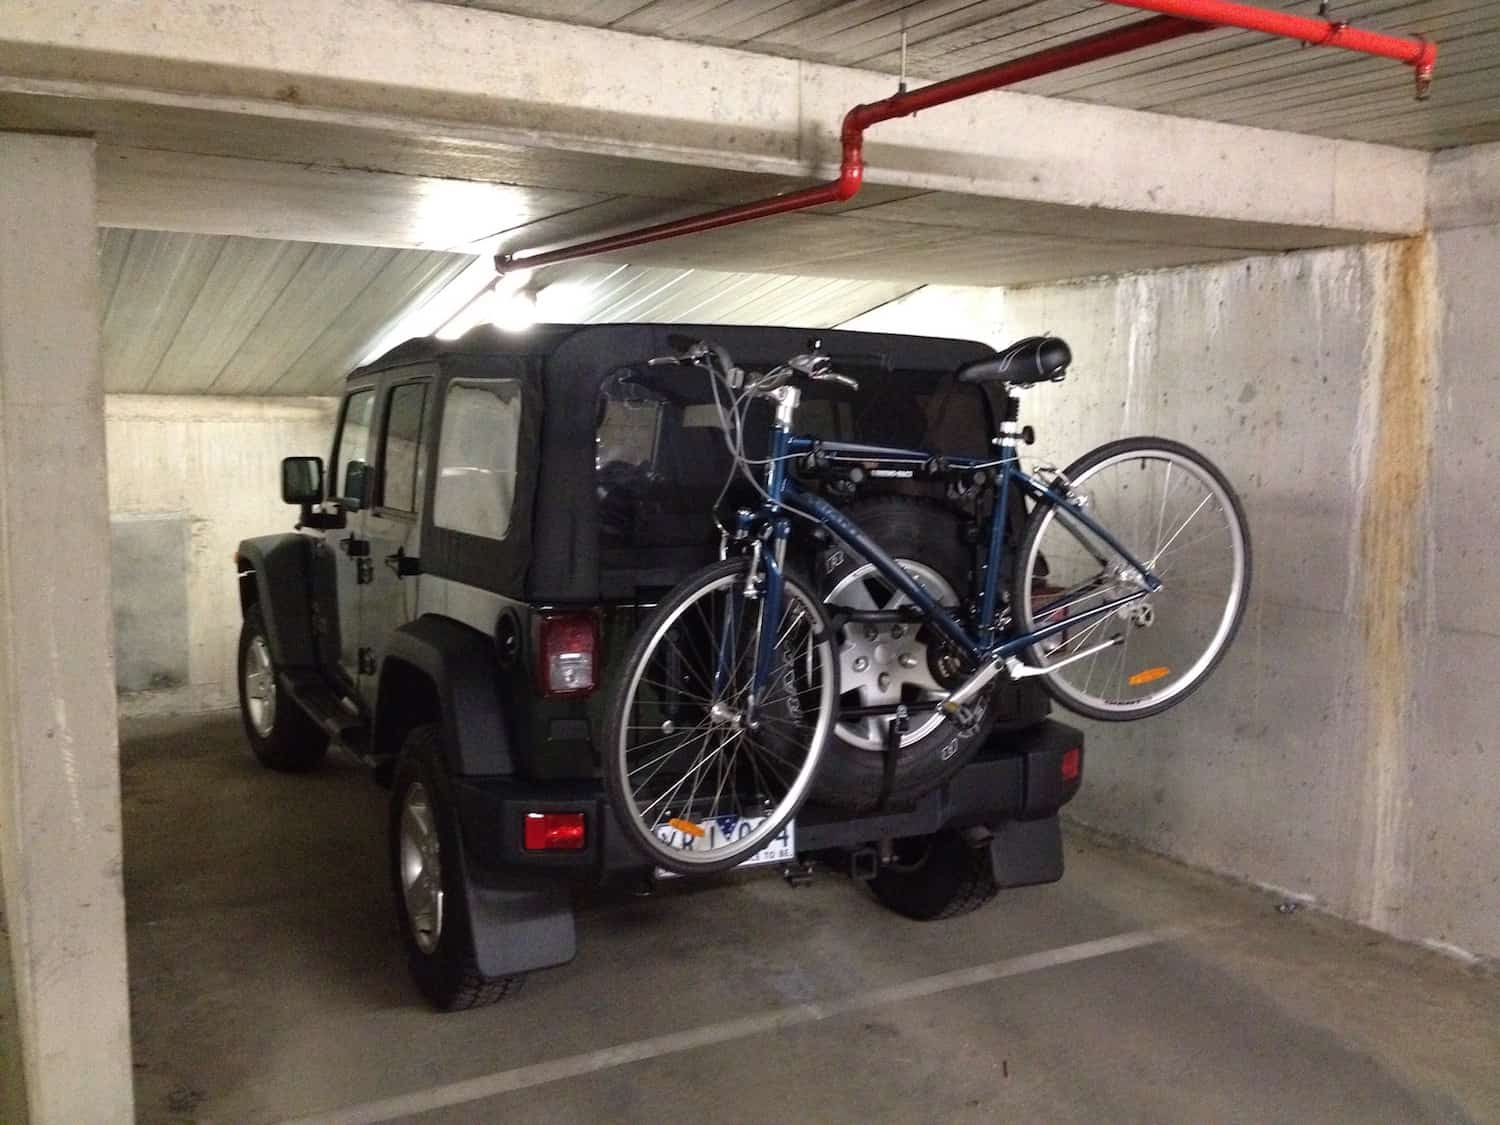 Transport Bike By Car - Boot Mounted Bike Rack Carrier